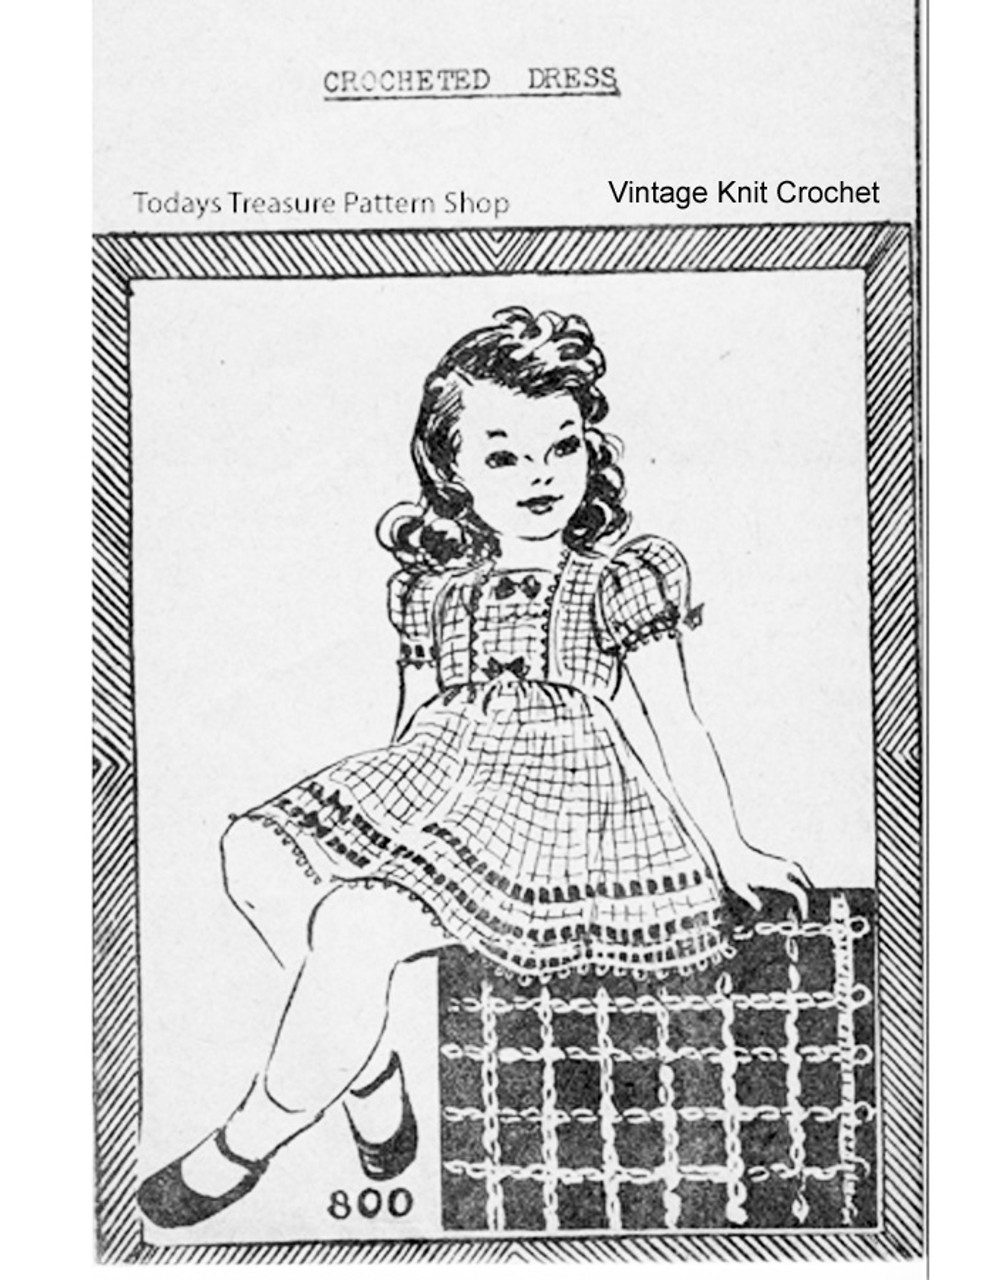 Girls Puff Sleeve Crochet Dress Pattern, Peggy Roberts 800